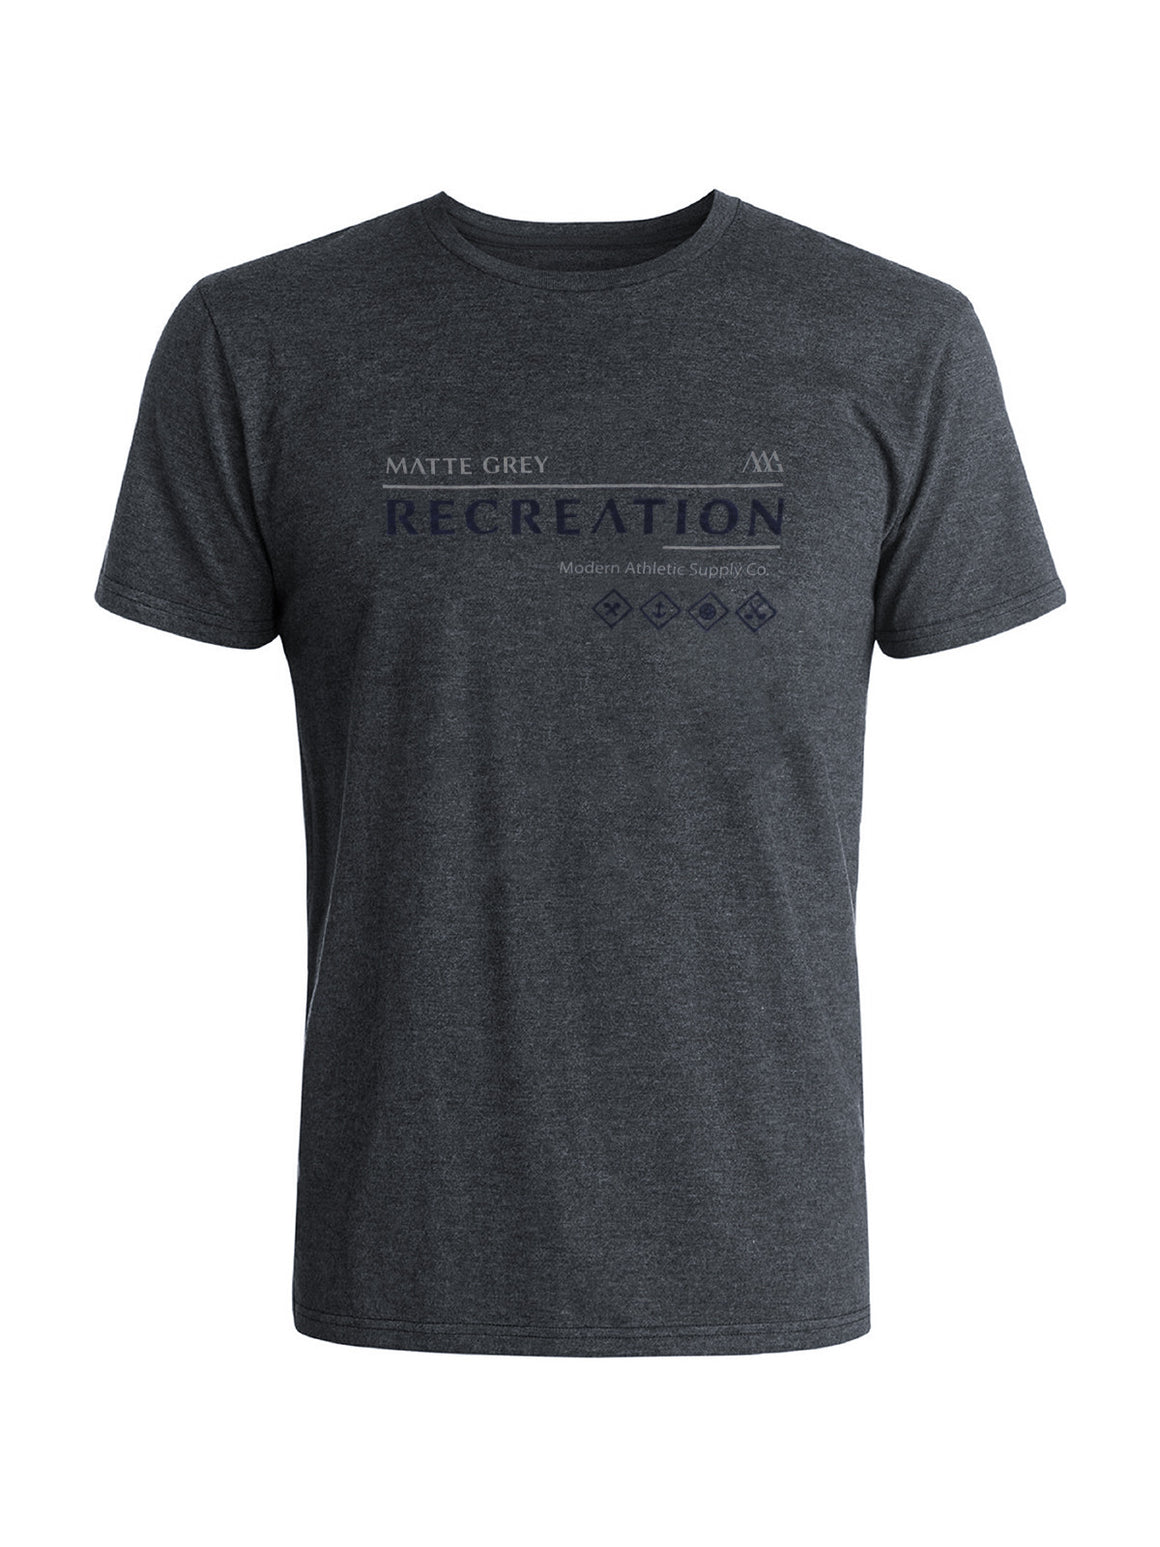 Recreation Tee Shirt - Graphite Hea (Light Grey / Navy)